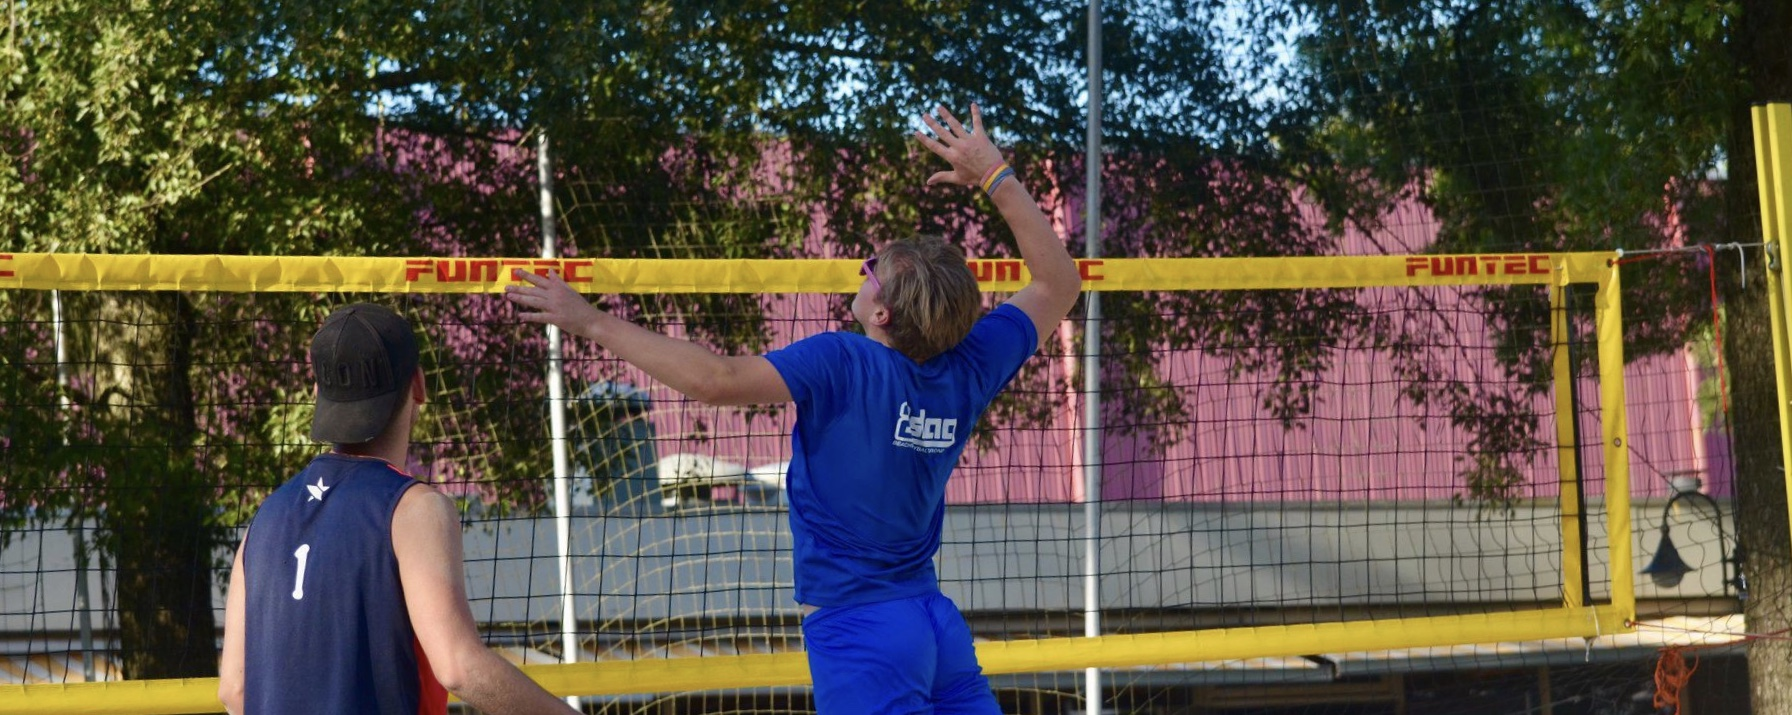 Beachvolleyballen doe je bij G.S.B.V. Tweeslag